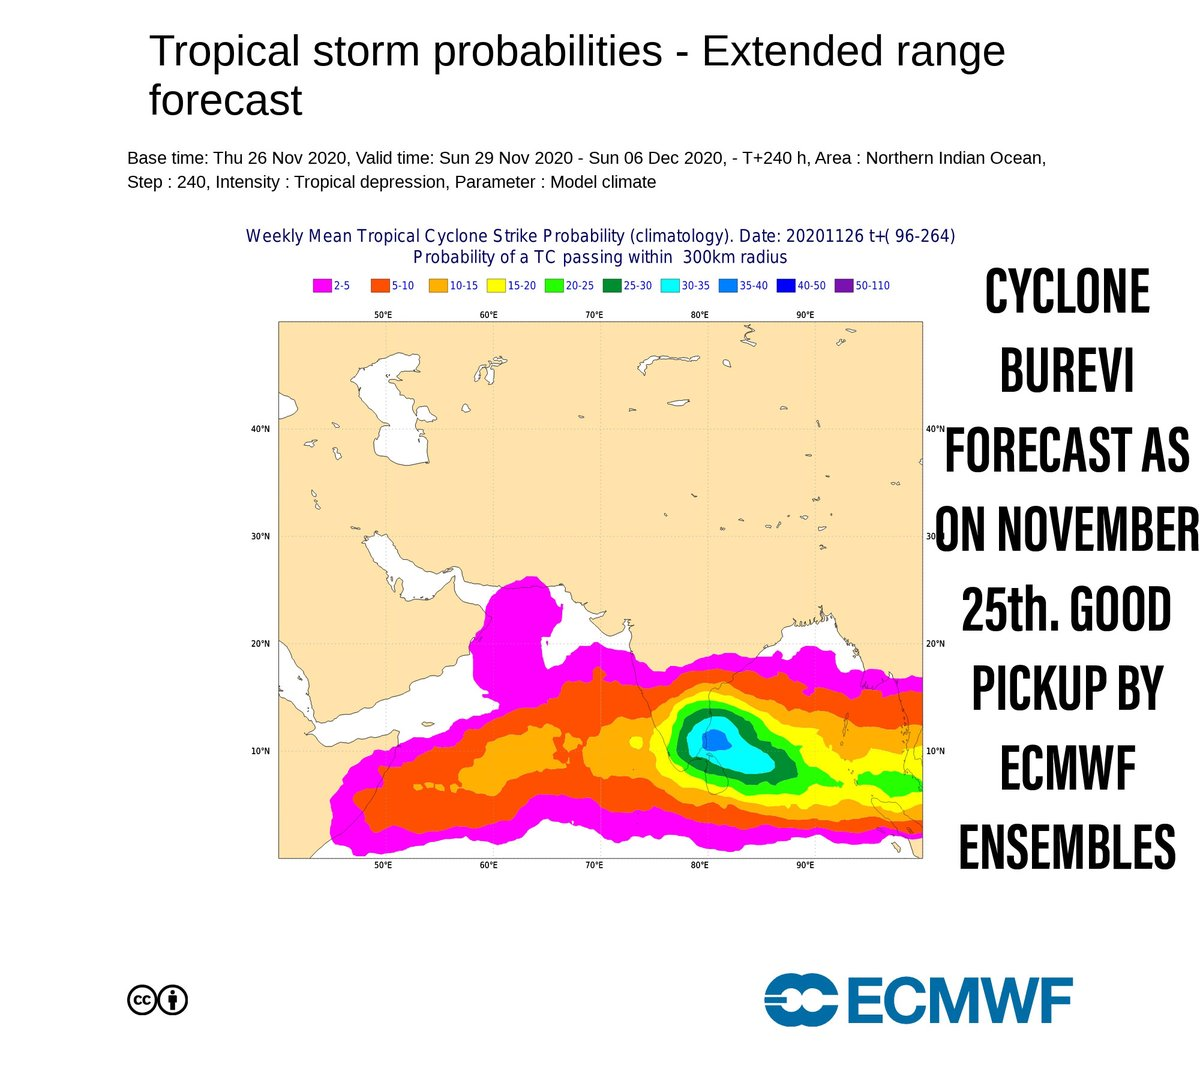 When it comes to #MJO forecast, disturbances in bay, onset spell, easterly troughs #CycloneNivar #CycloneBurevi, #ECMWF was picked the trend perfectly and spot on with its predictions. #NEM2020 #ChennaiRains  (3/5)